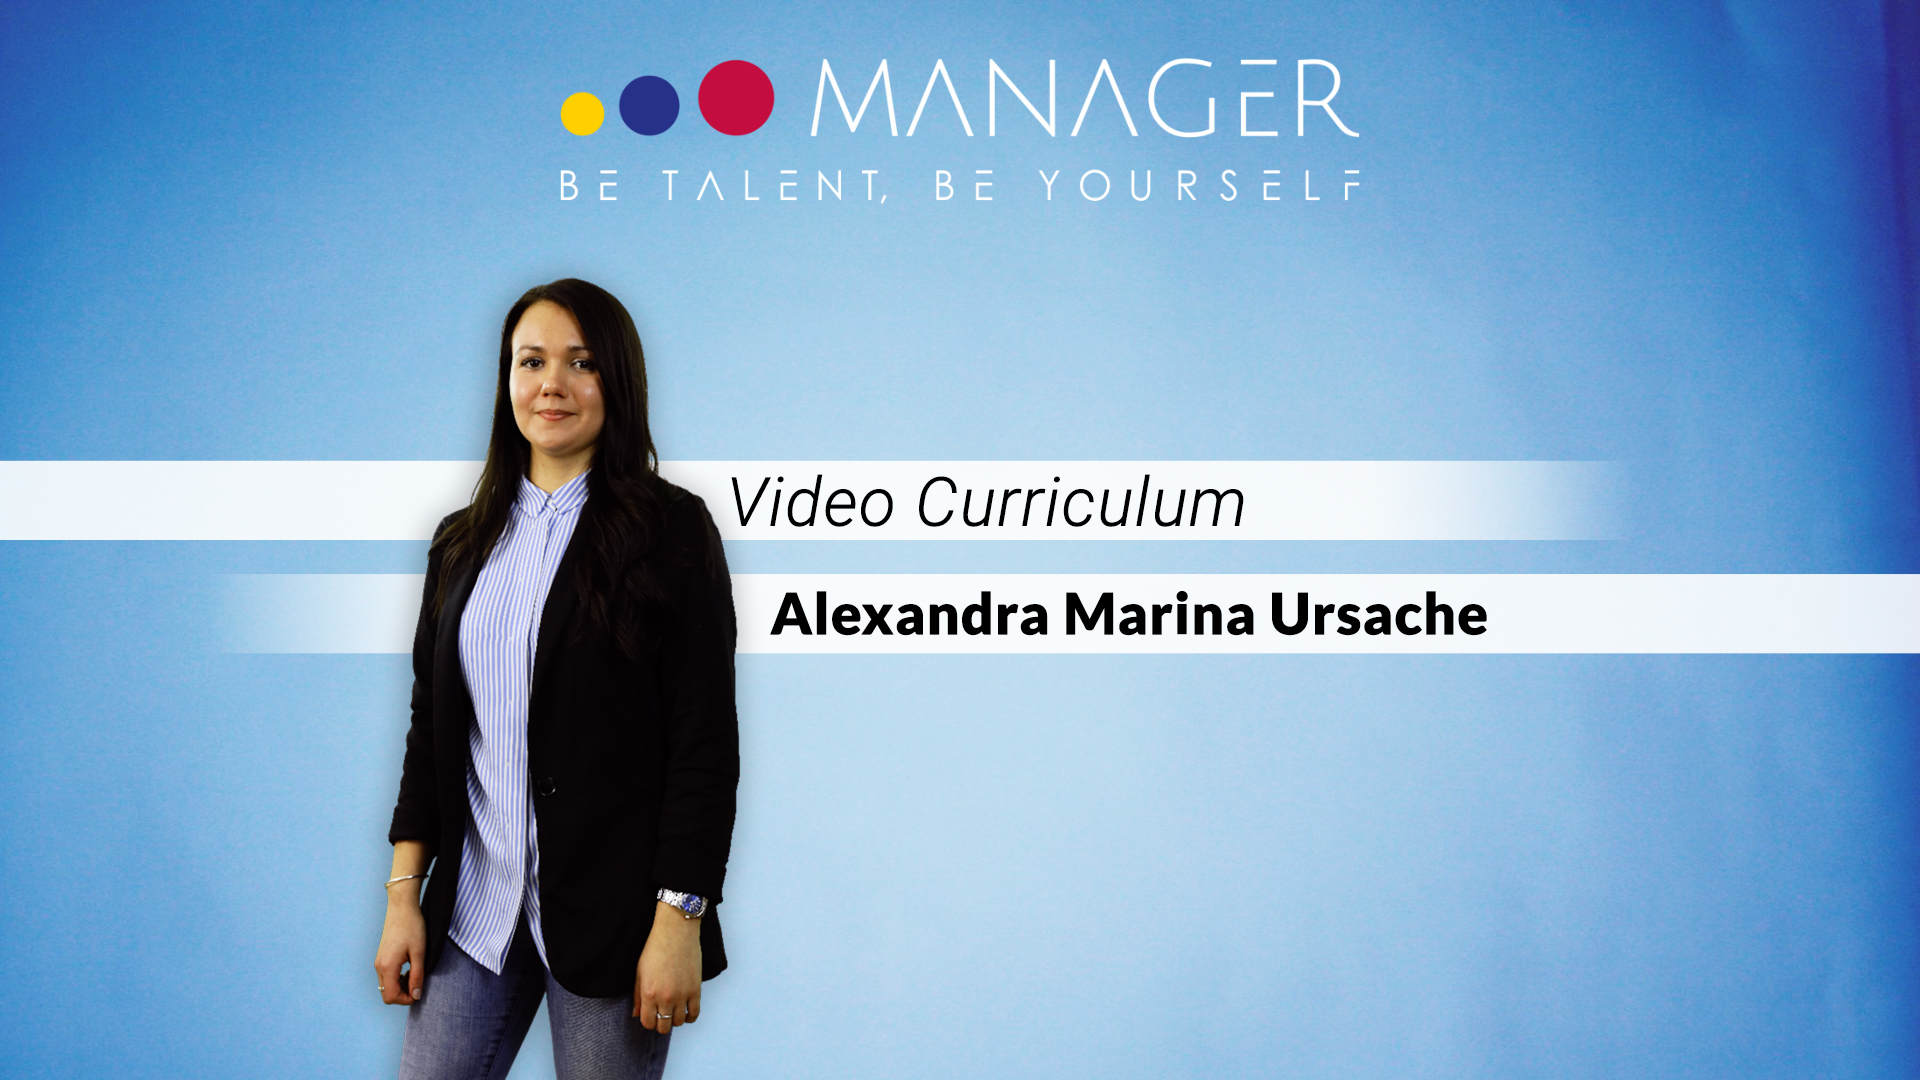 video curriculum alexandra marina ursache